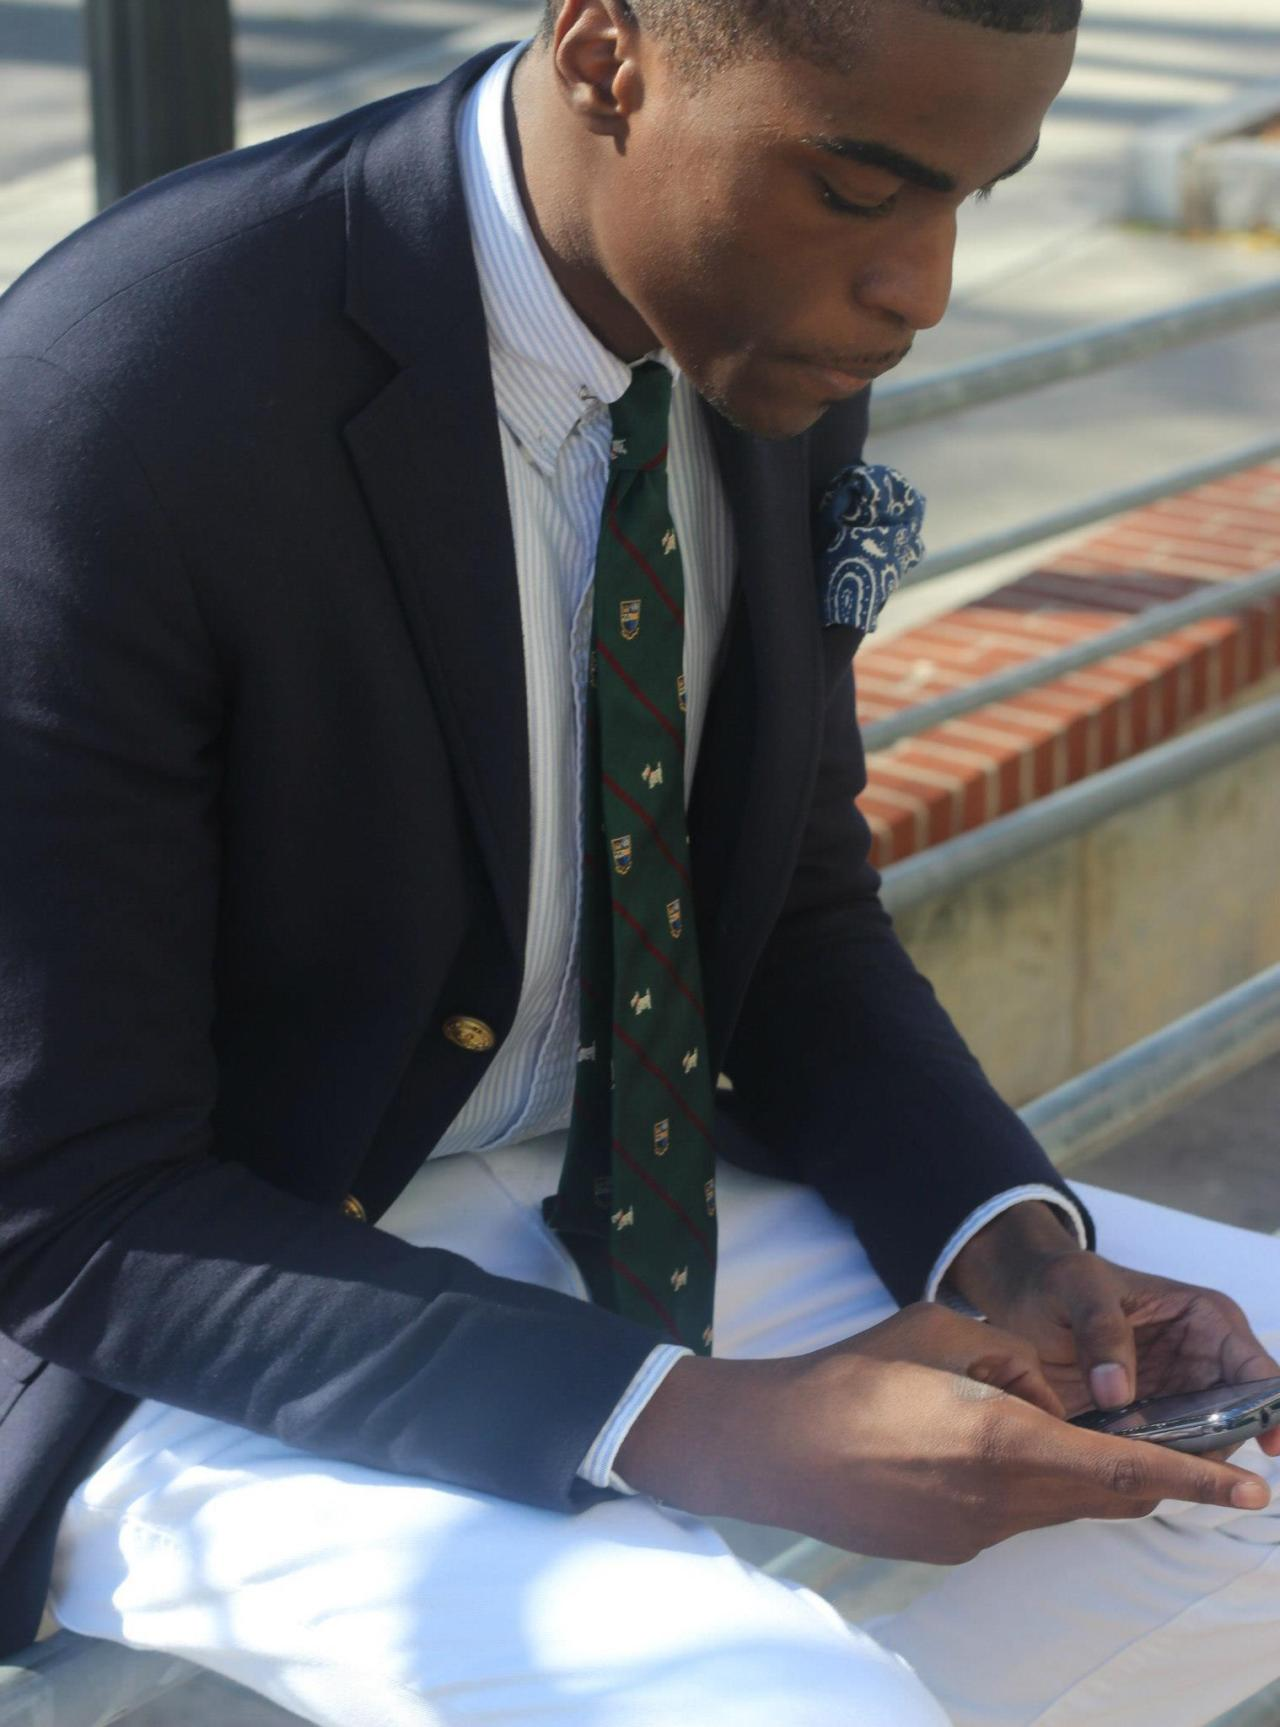 blackfashion:  Blazer and Bandana: Rugby by Ralph Lauren, Shirt and Tie: Polo Ralph Lauren, Trousers: Levis Jalen Law, 19, Morehouse College in Atl, GA submitted by http://jayblazersandbowties.tumblr.com/ Photographed by Jalen Law